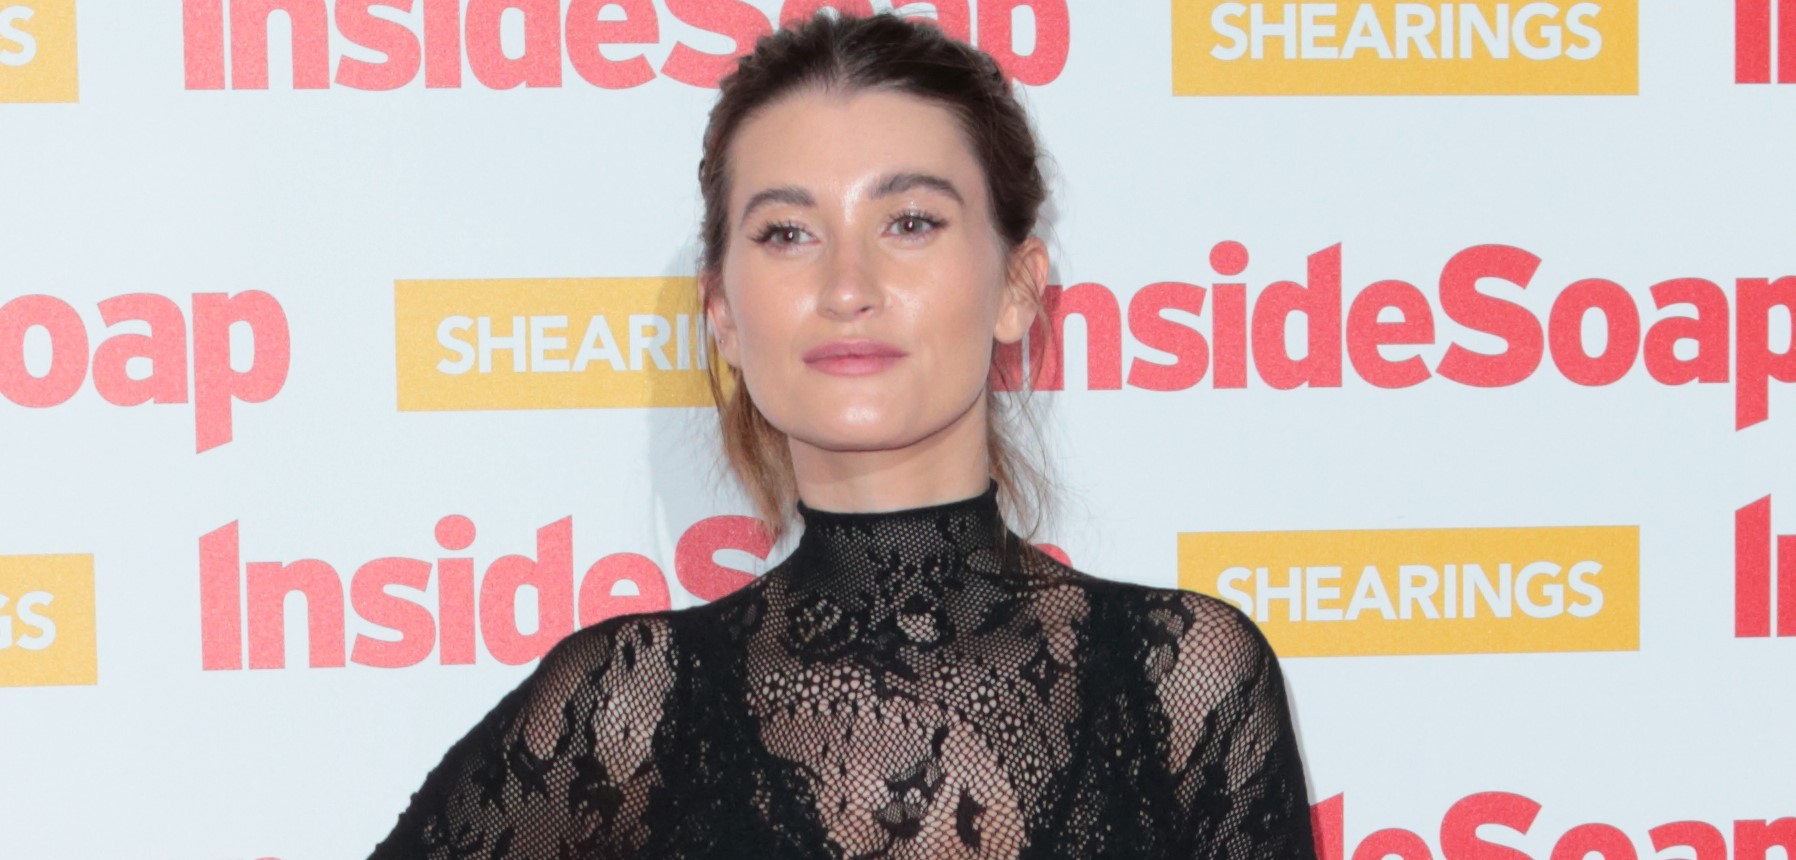 Emmerdale's Charley Webb heads to London with co-stars to support Sally Dexter on stage